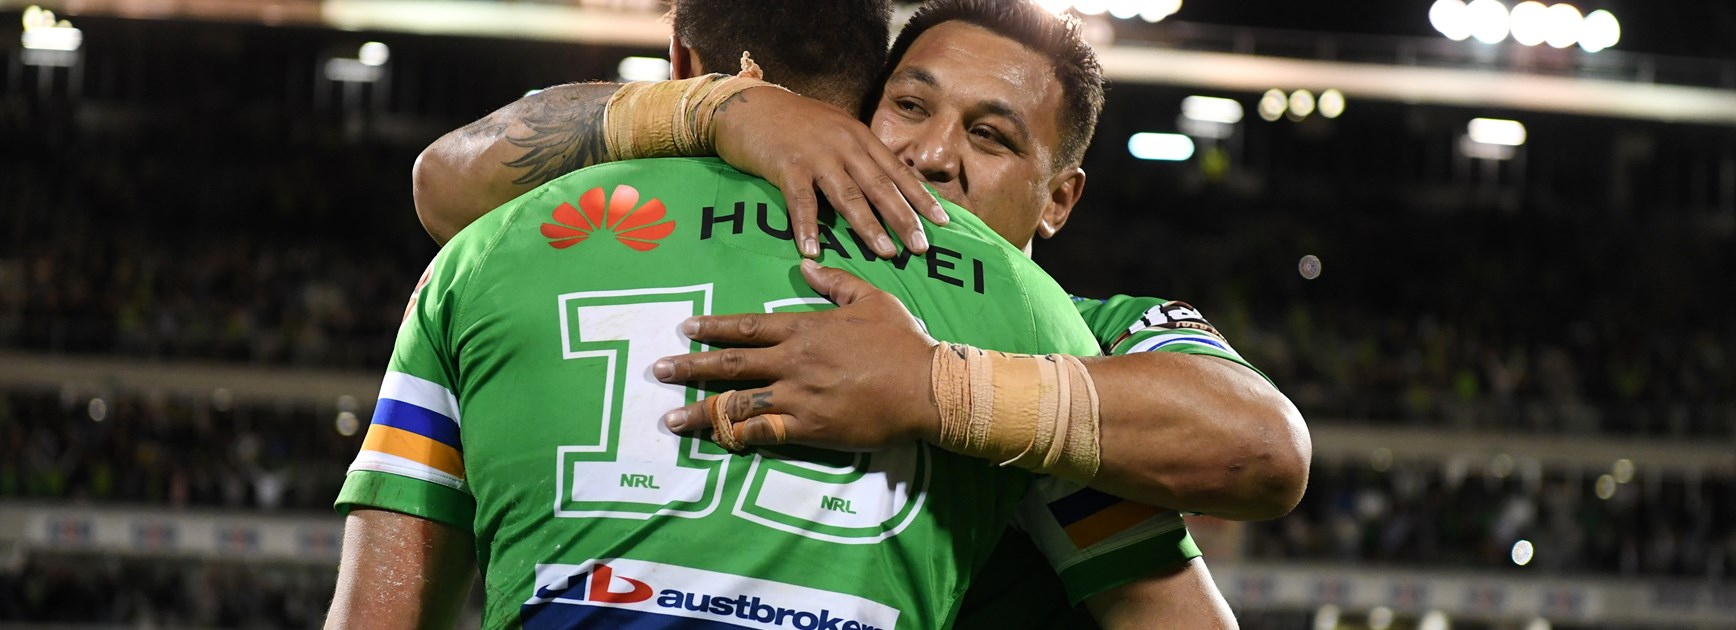 NRL announces new broadcast deal with Nine, Foxtel